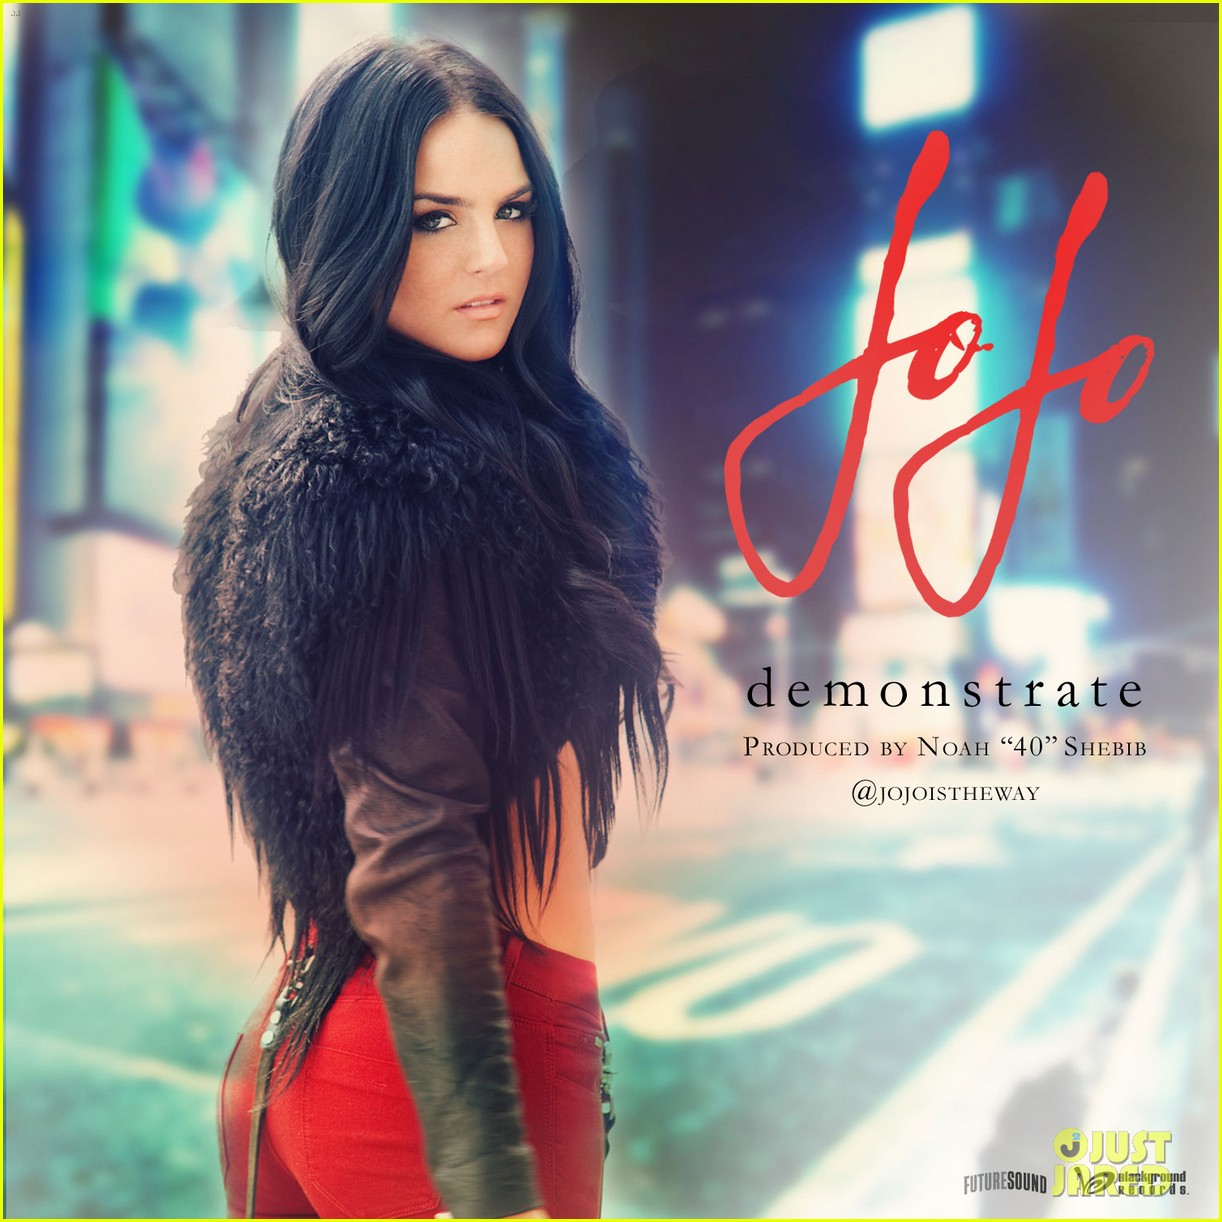 jojo new song demonstrate